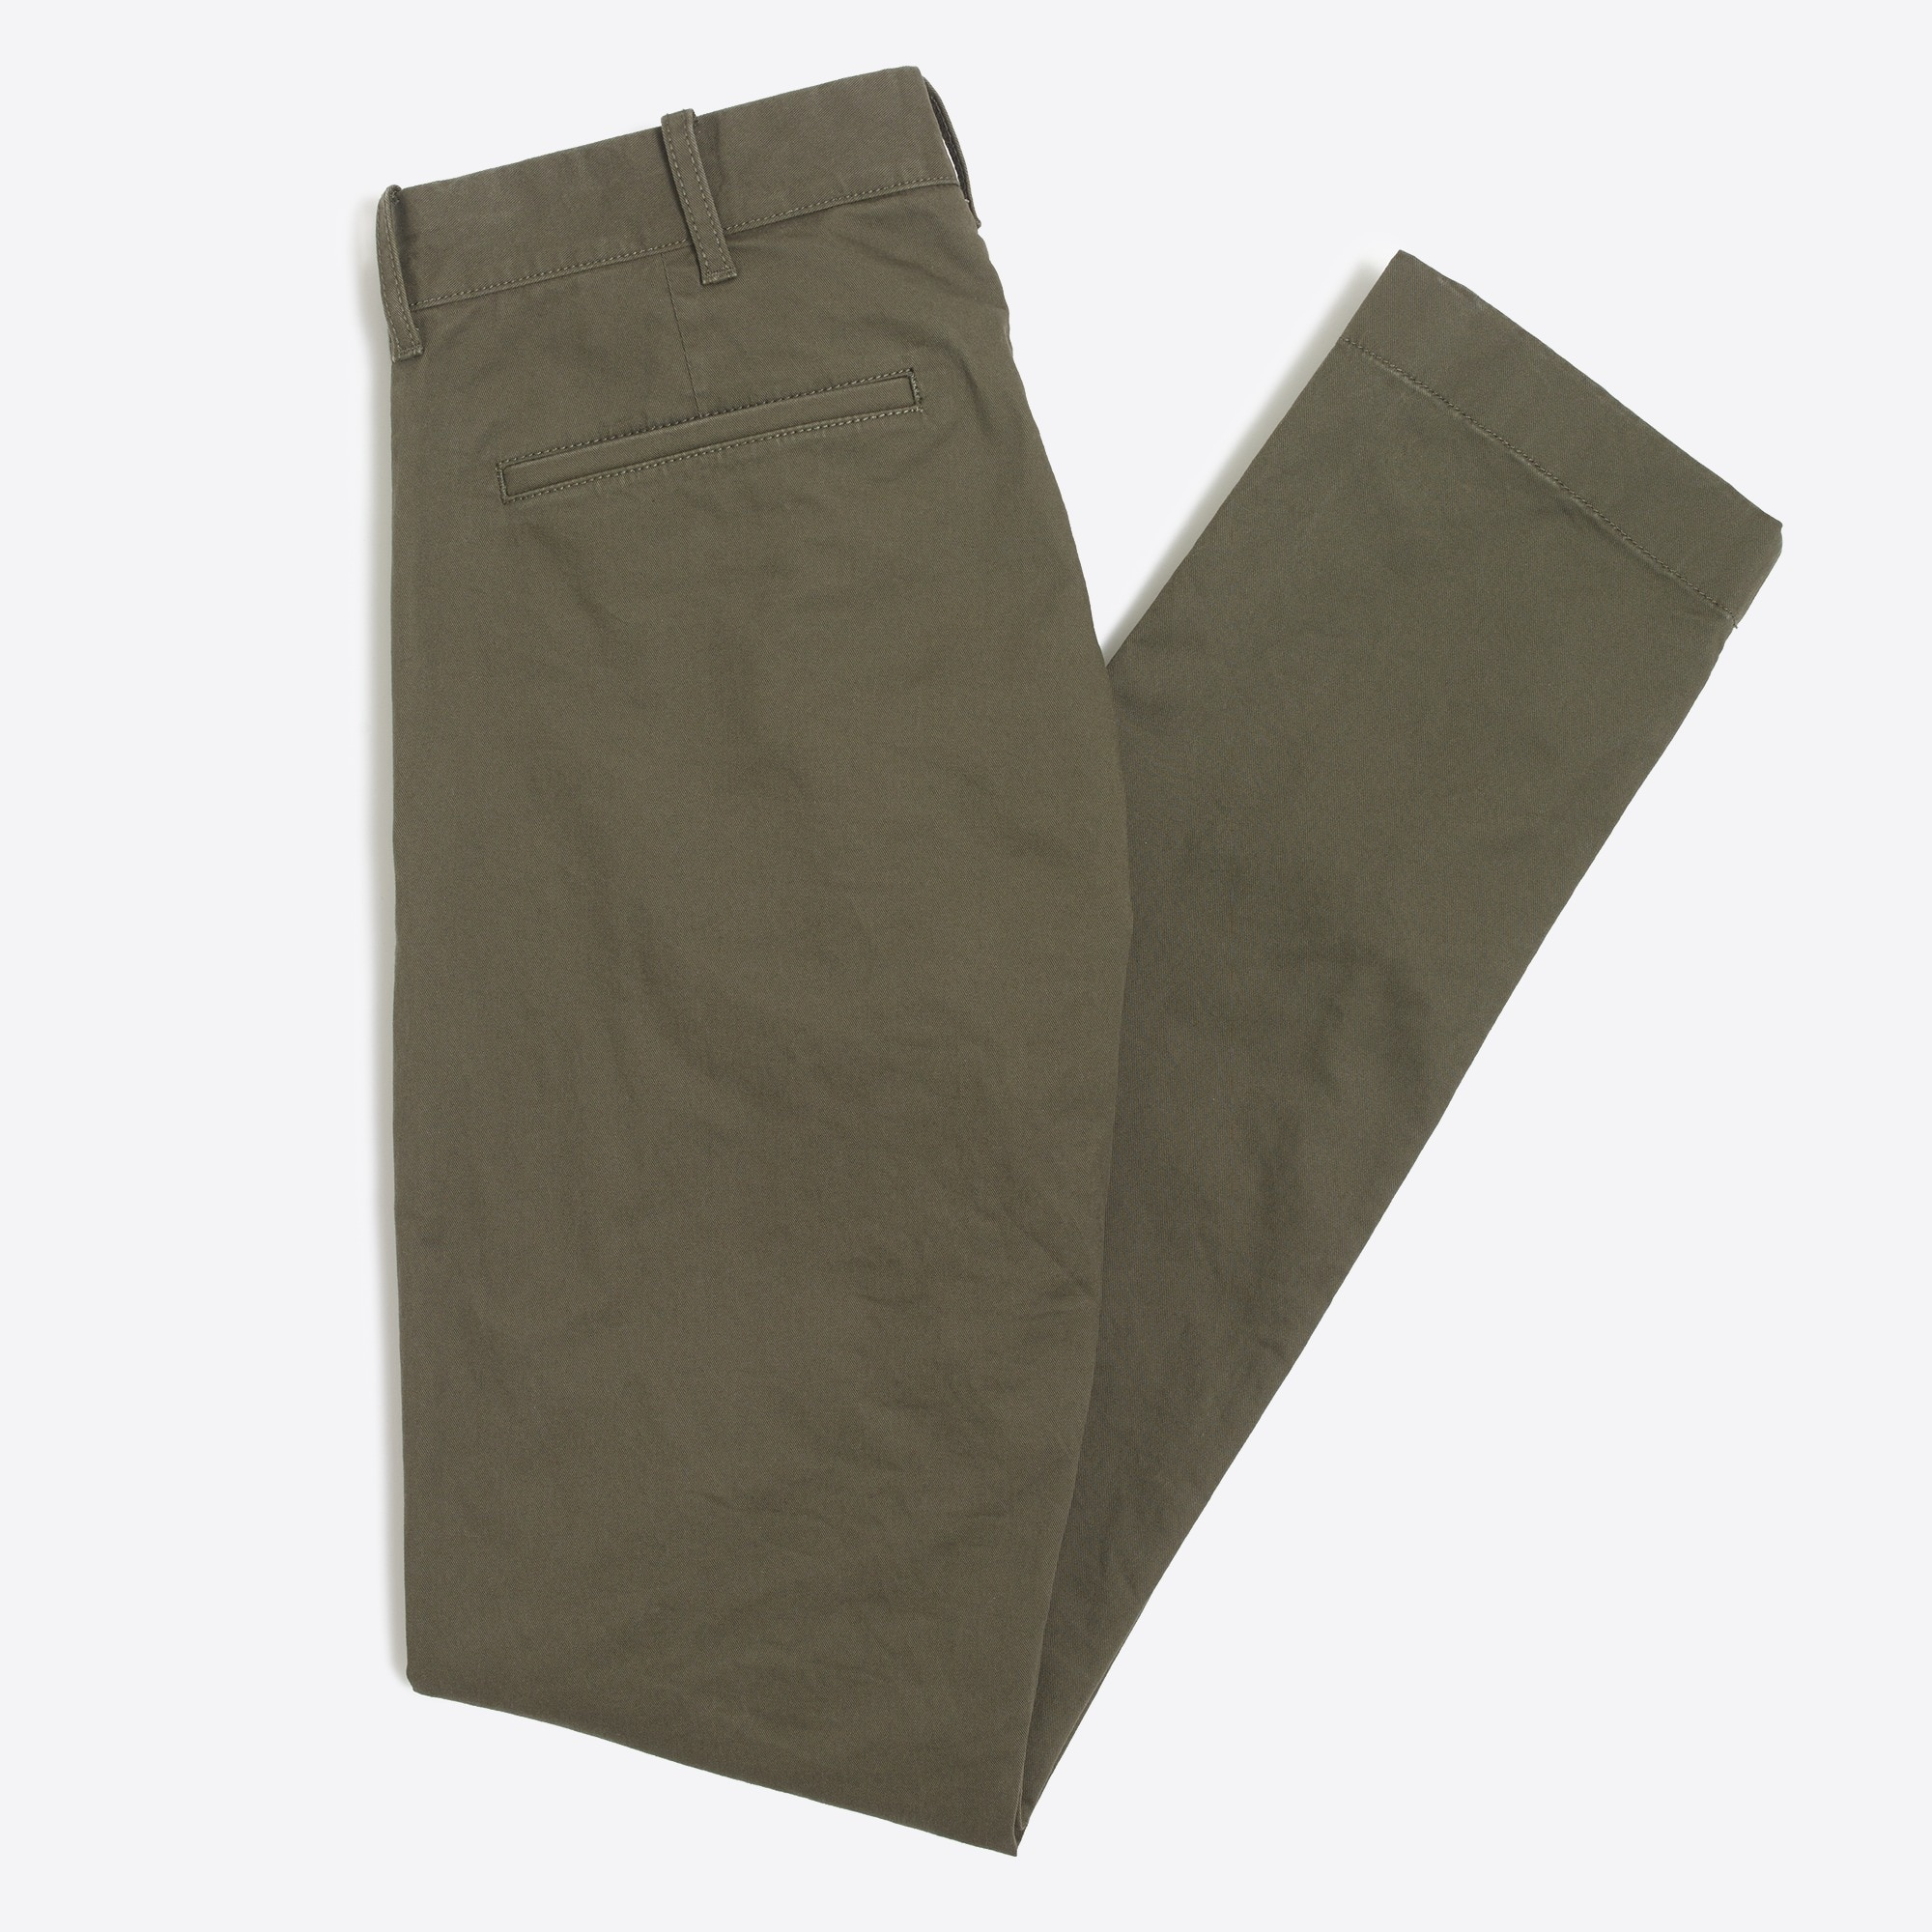 Image 1 for Flex slim-fit Driggs chino